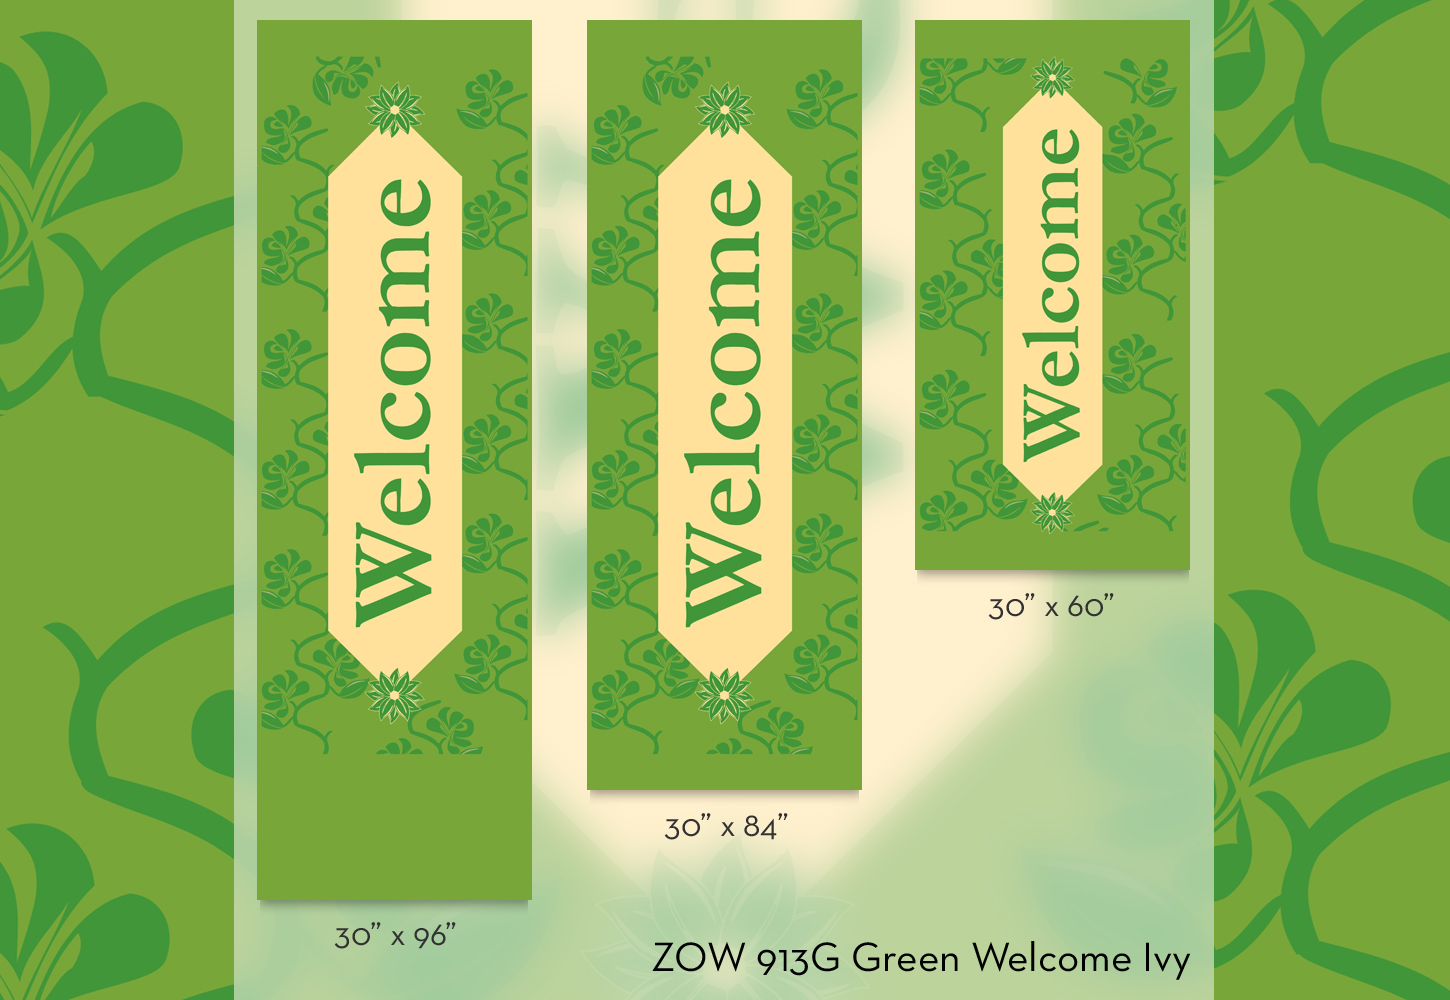 ZOW 913G Green Welcome Ivy